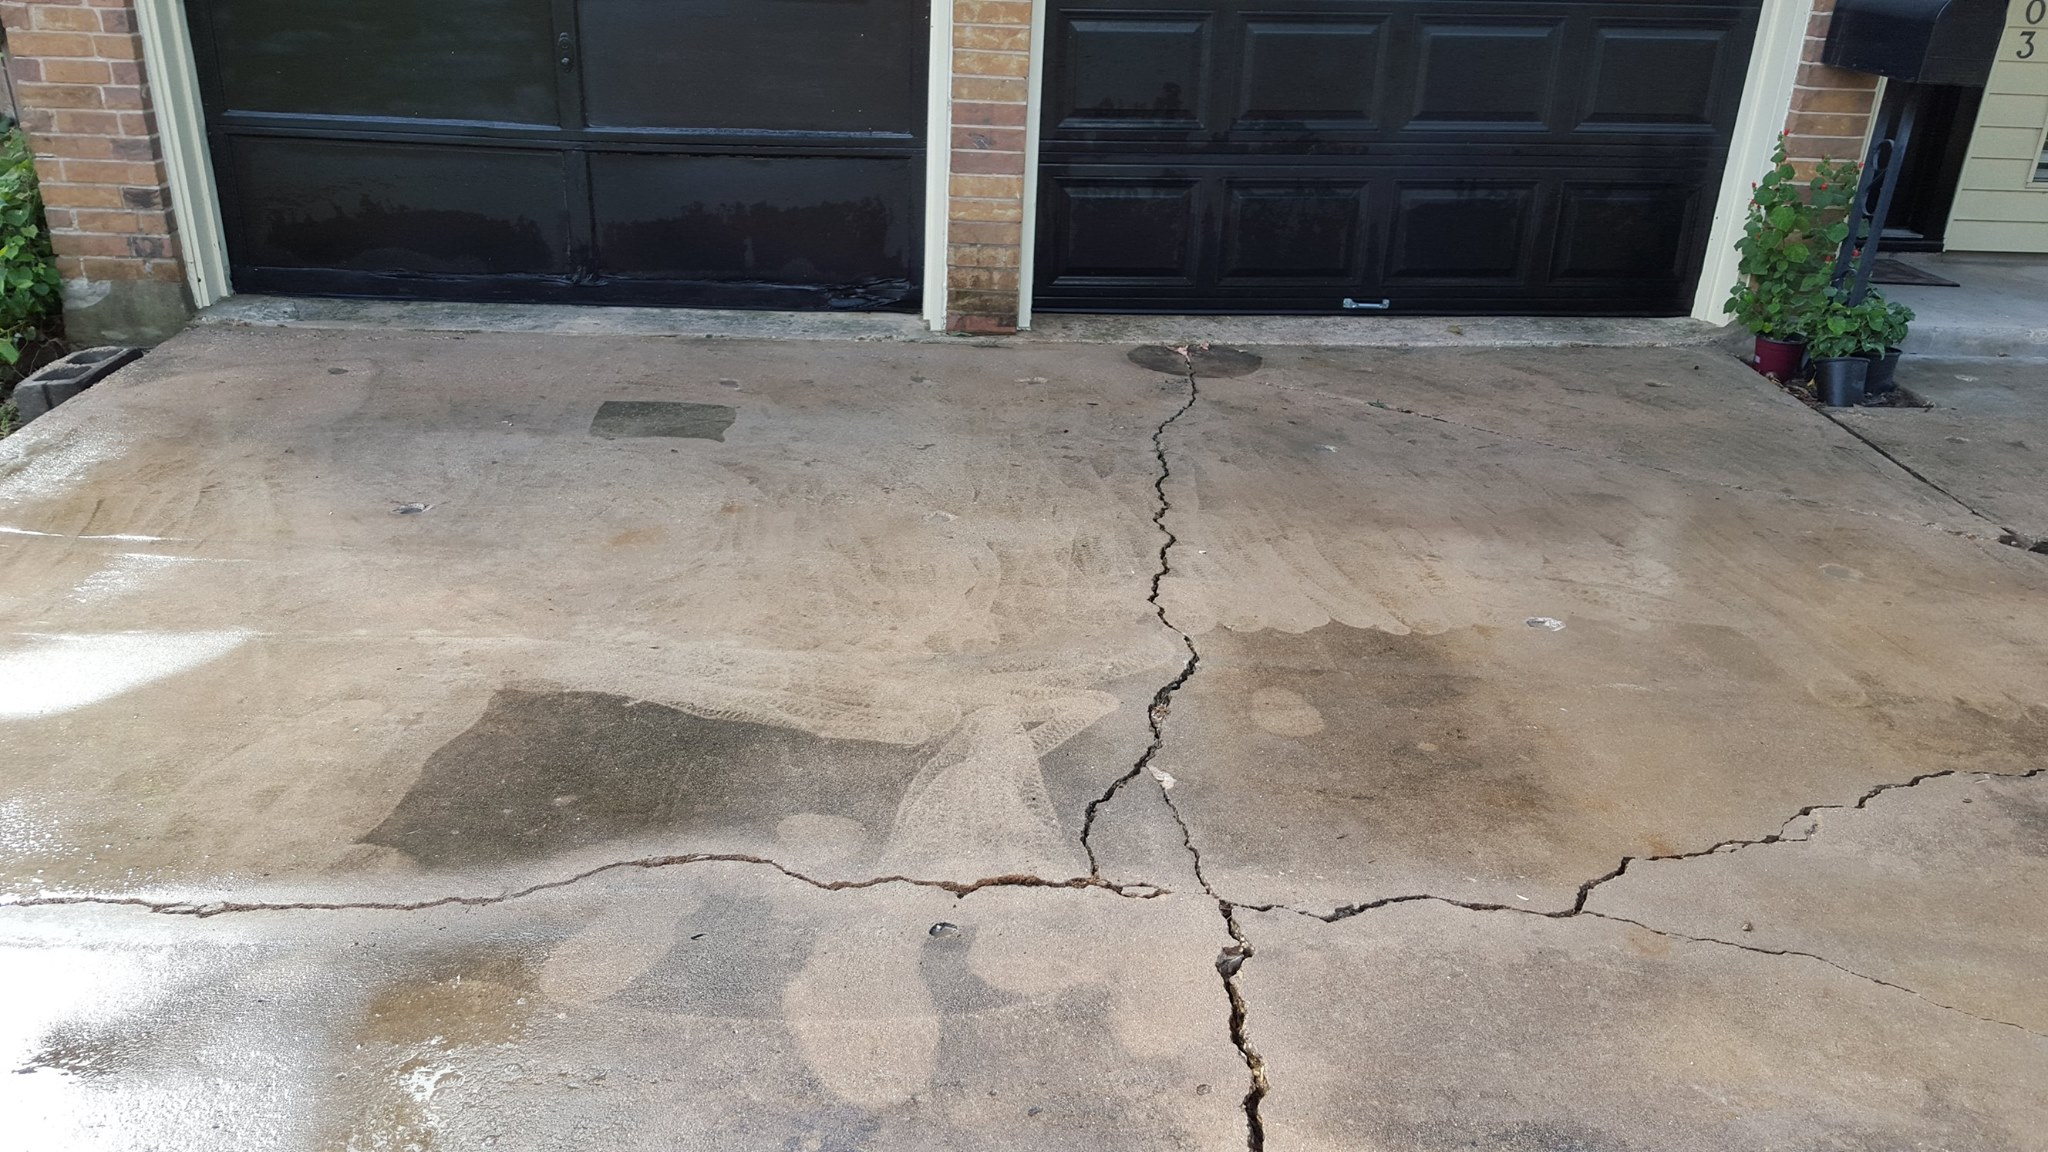 AFTER - The driveway was level and all voids filled.